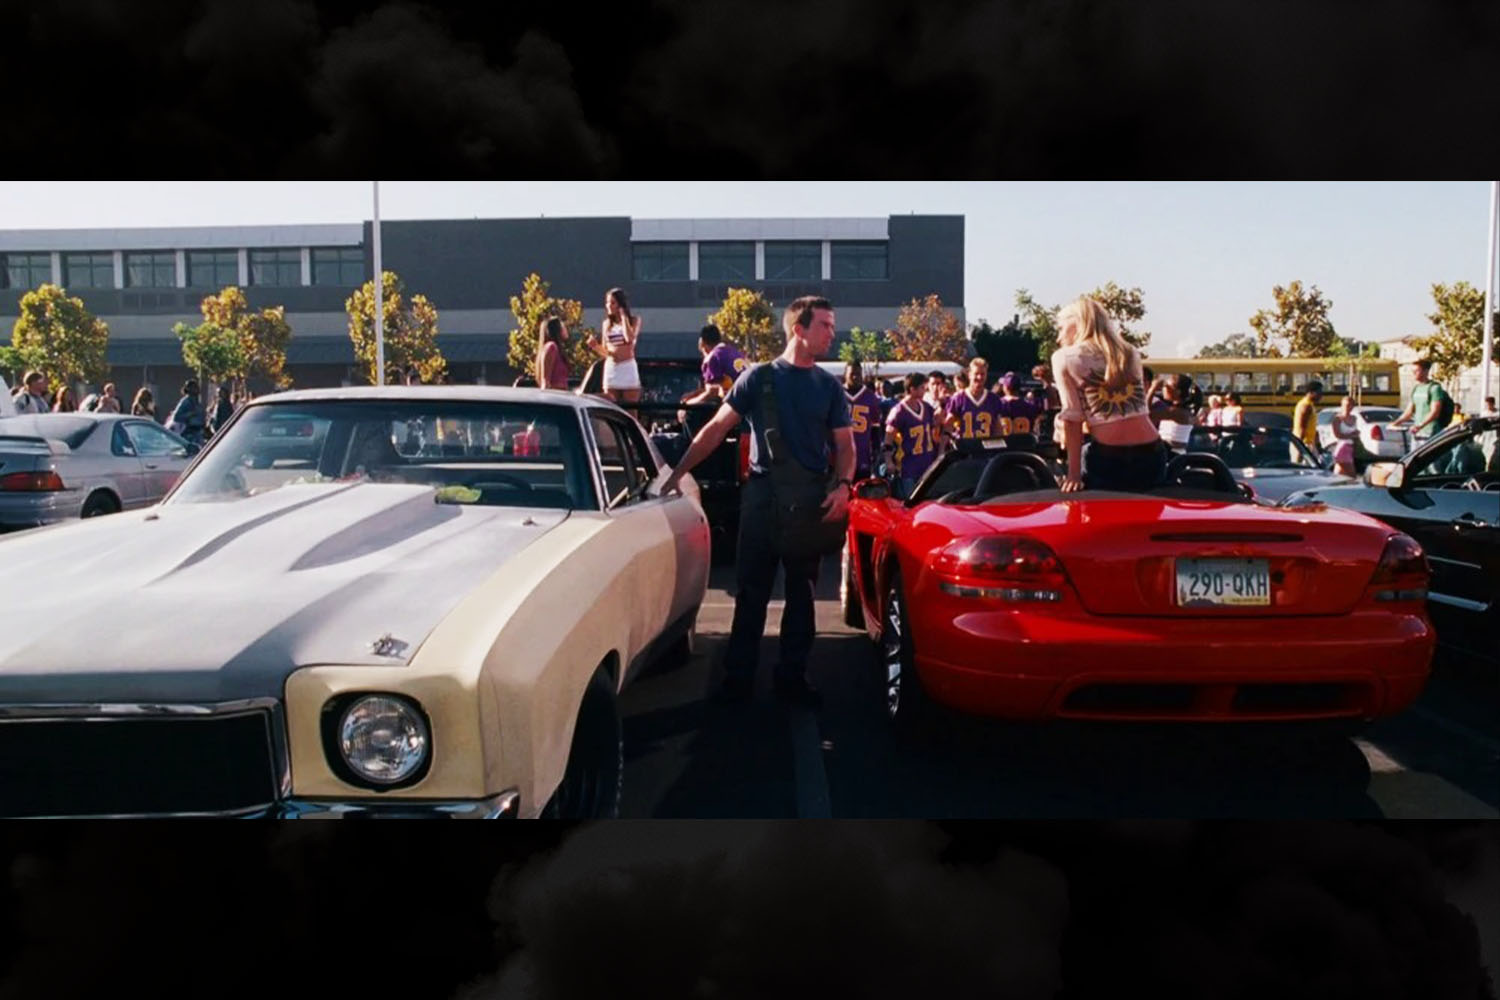 Sean Boswell's 1971 Chevrolet Monte Carlo sitting in the school parking lot during the opening scenes of The Fast and the Furious: Tokyo Drift